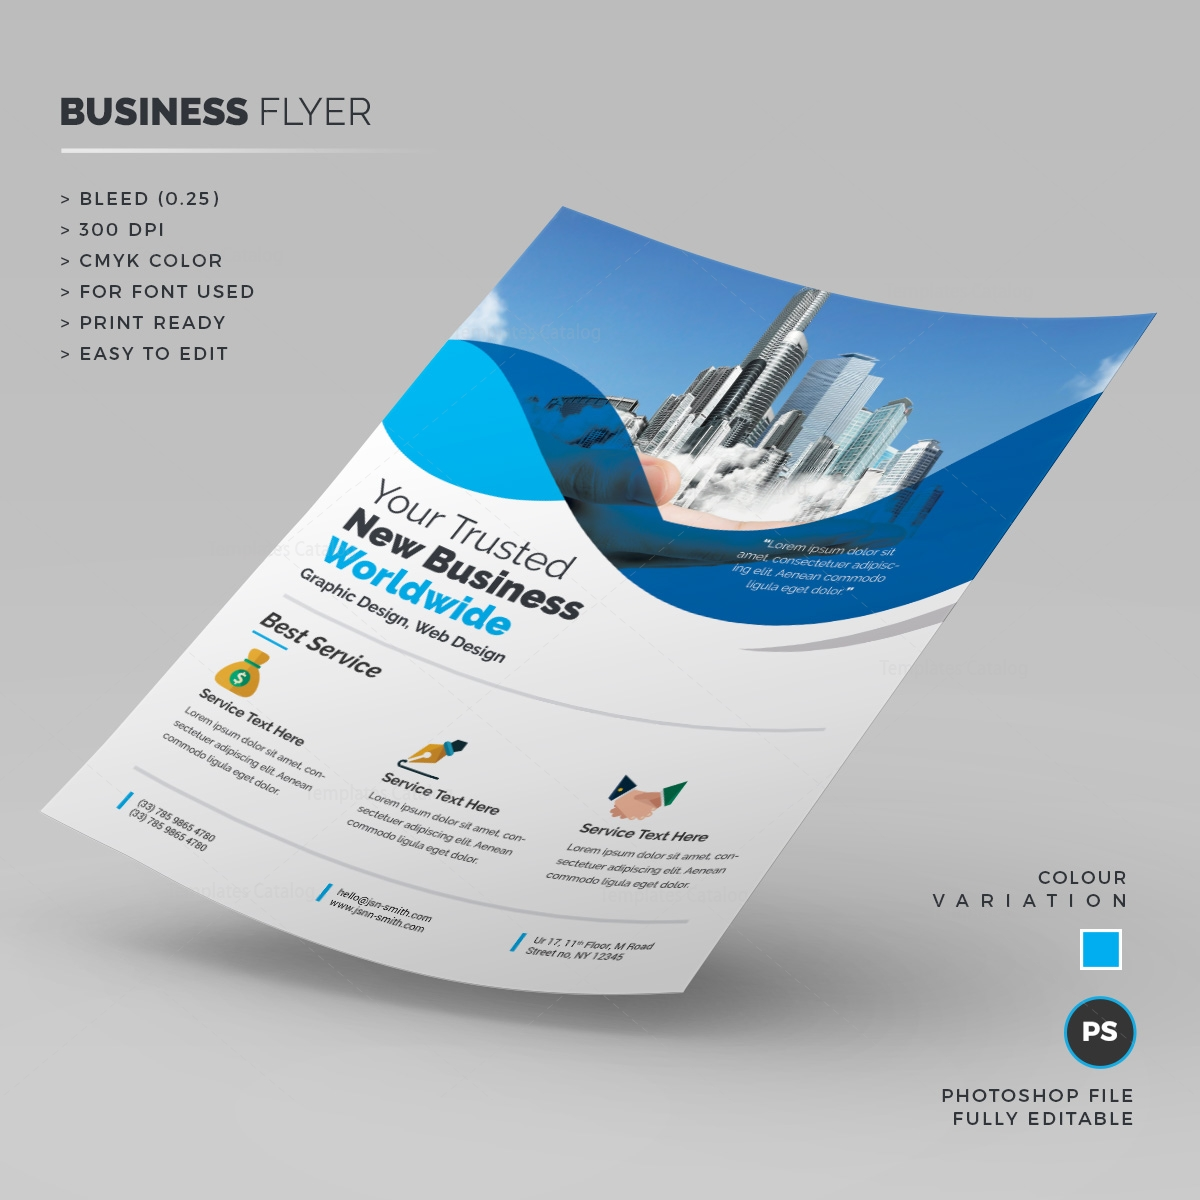 Photoshop corporate business flyer 000227 template catalog for Brochure templates for photoshop